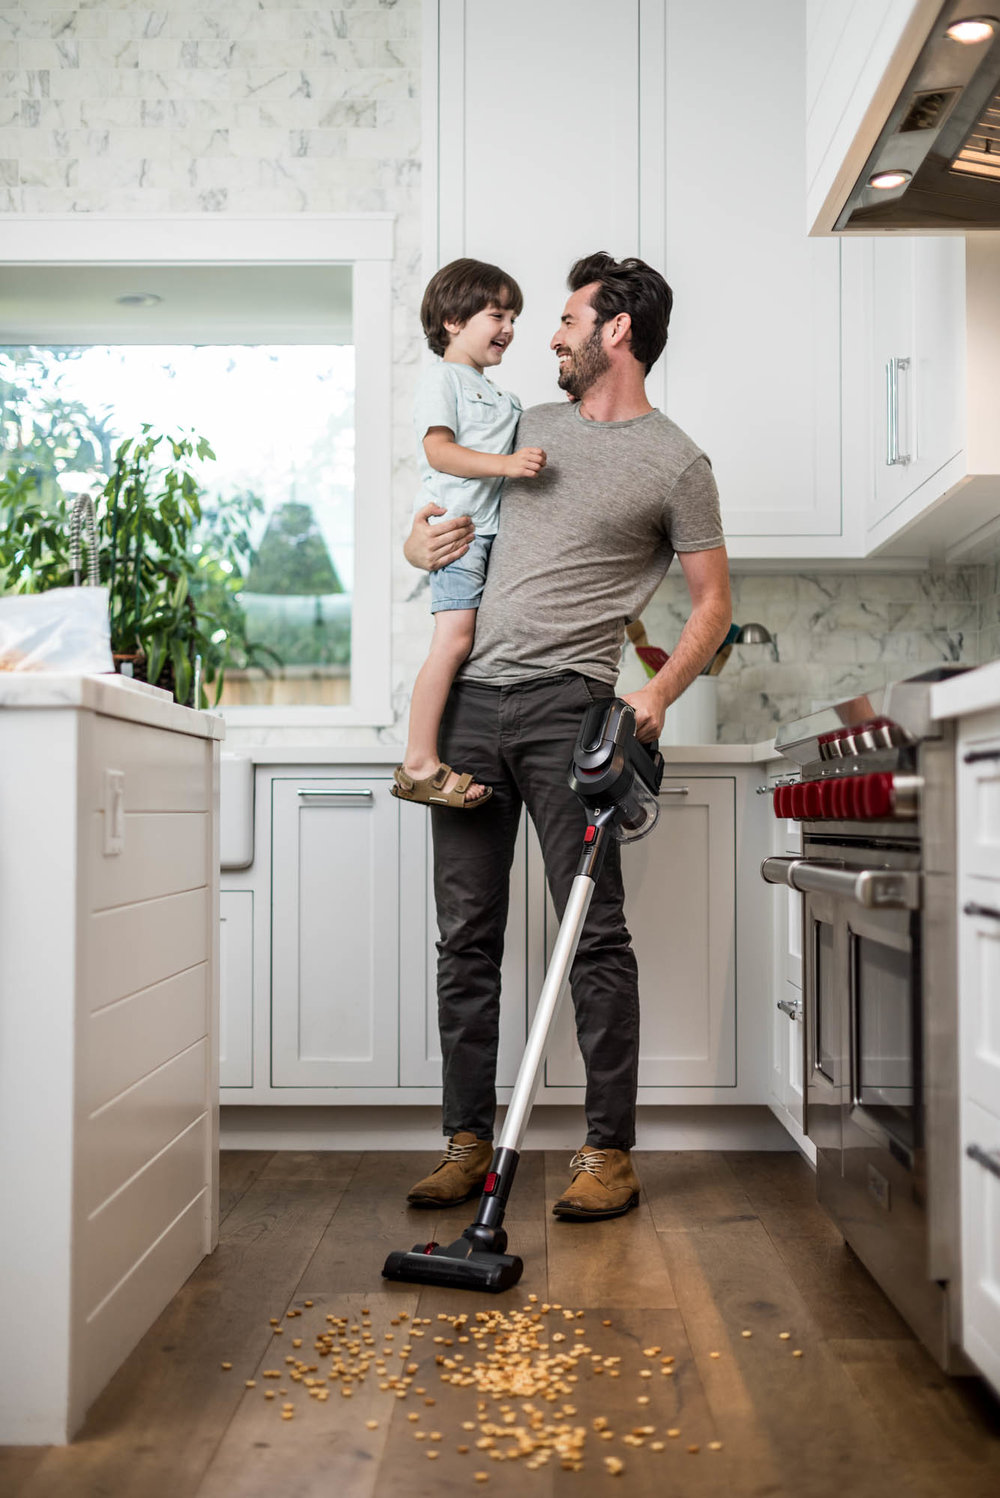 Man holding a child while vacuuming a kitchen